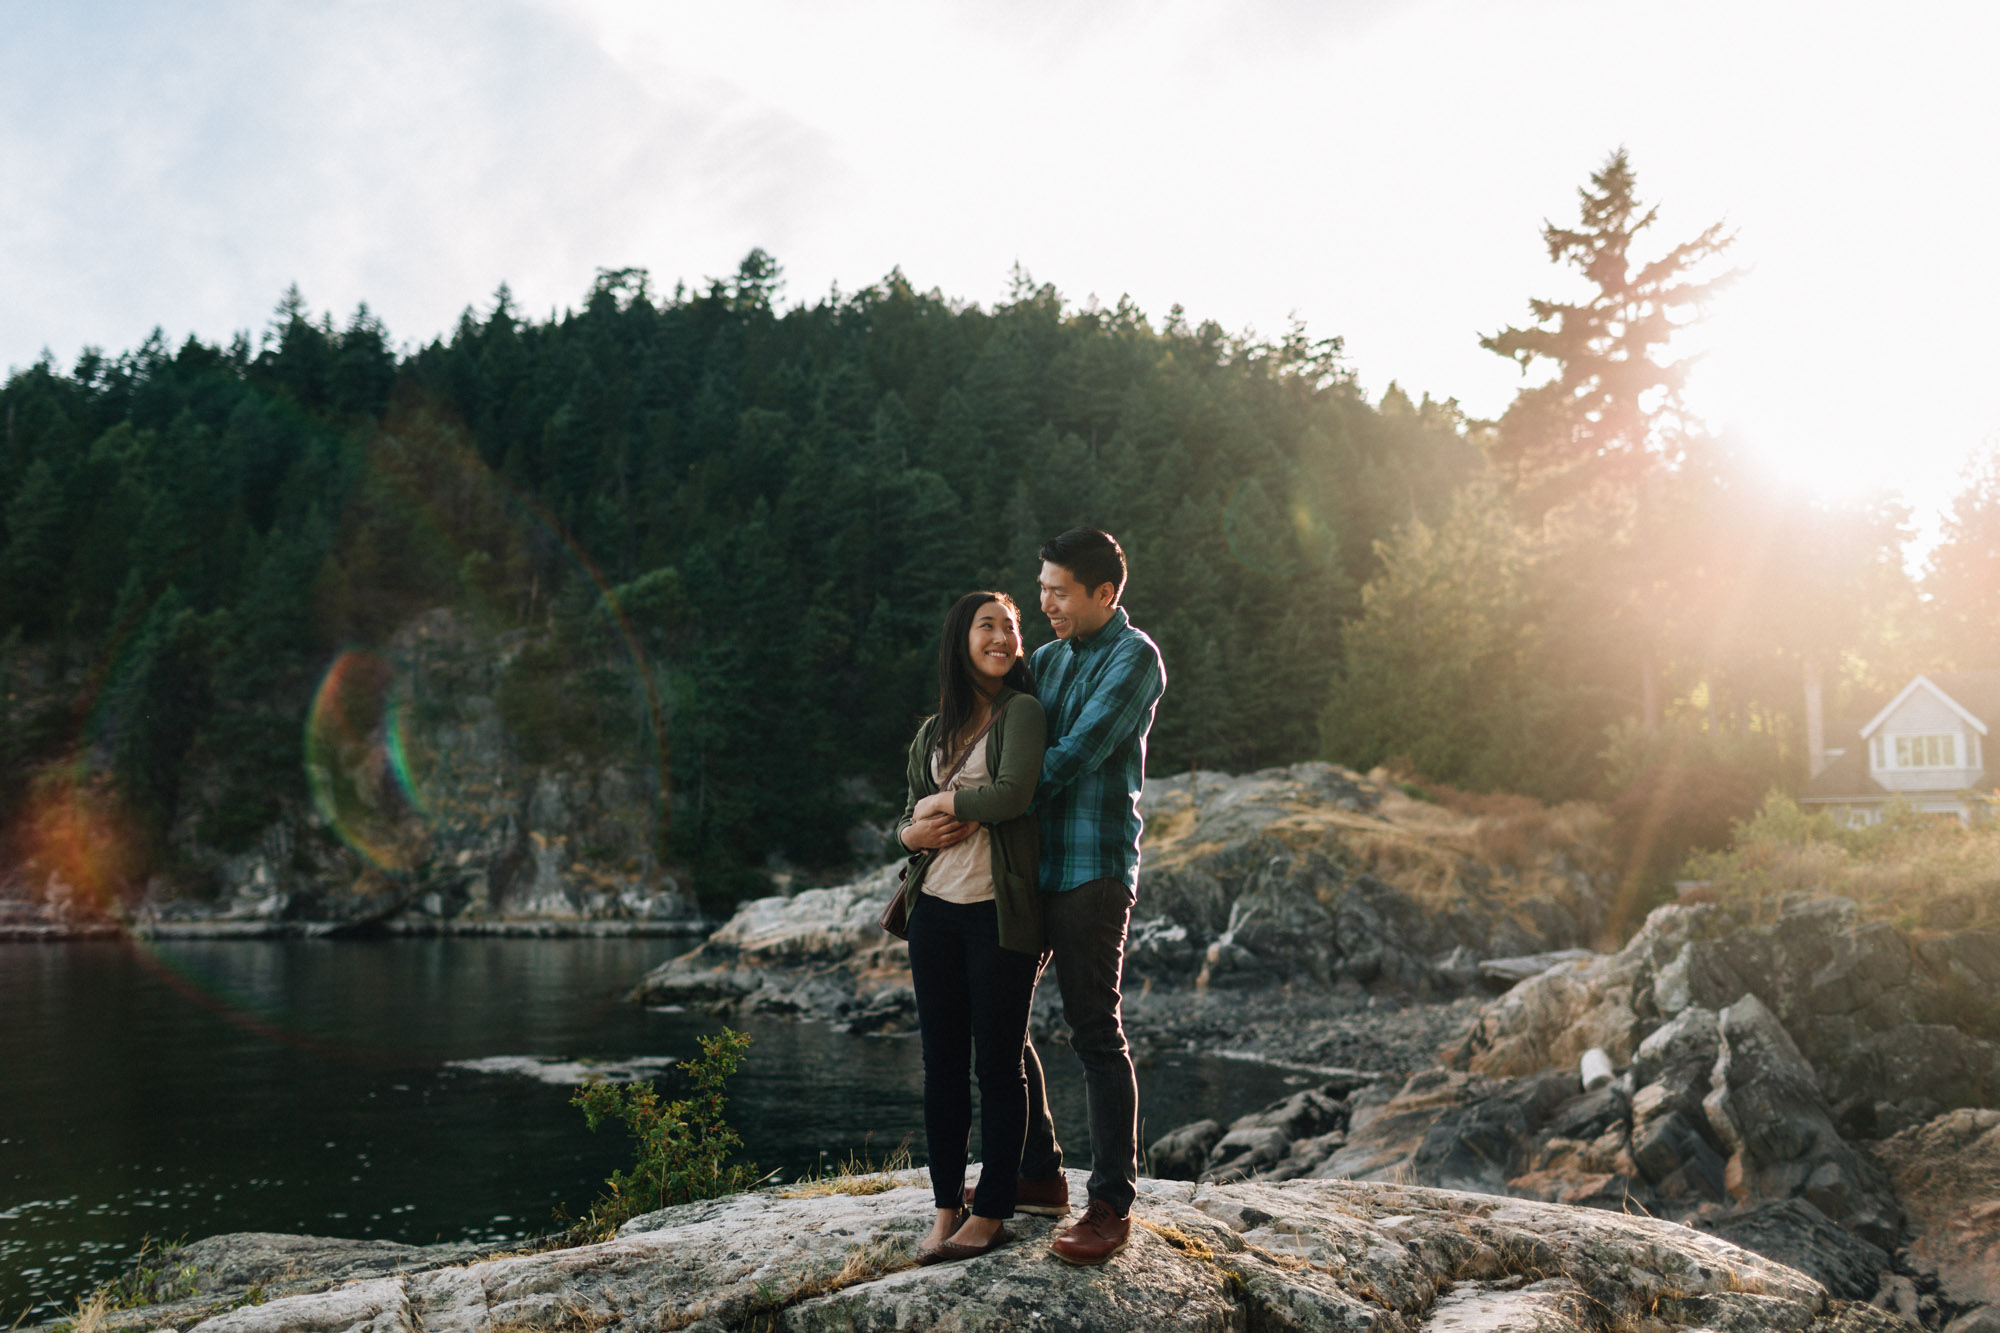 west vancouver sunset engagement photography at caulfield park with mytyl and vincent